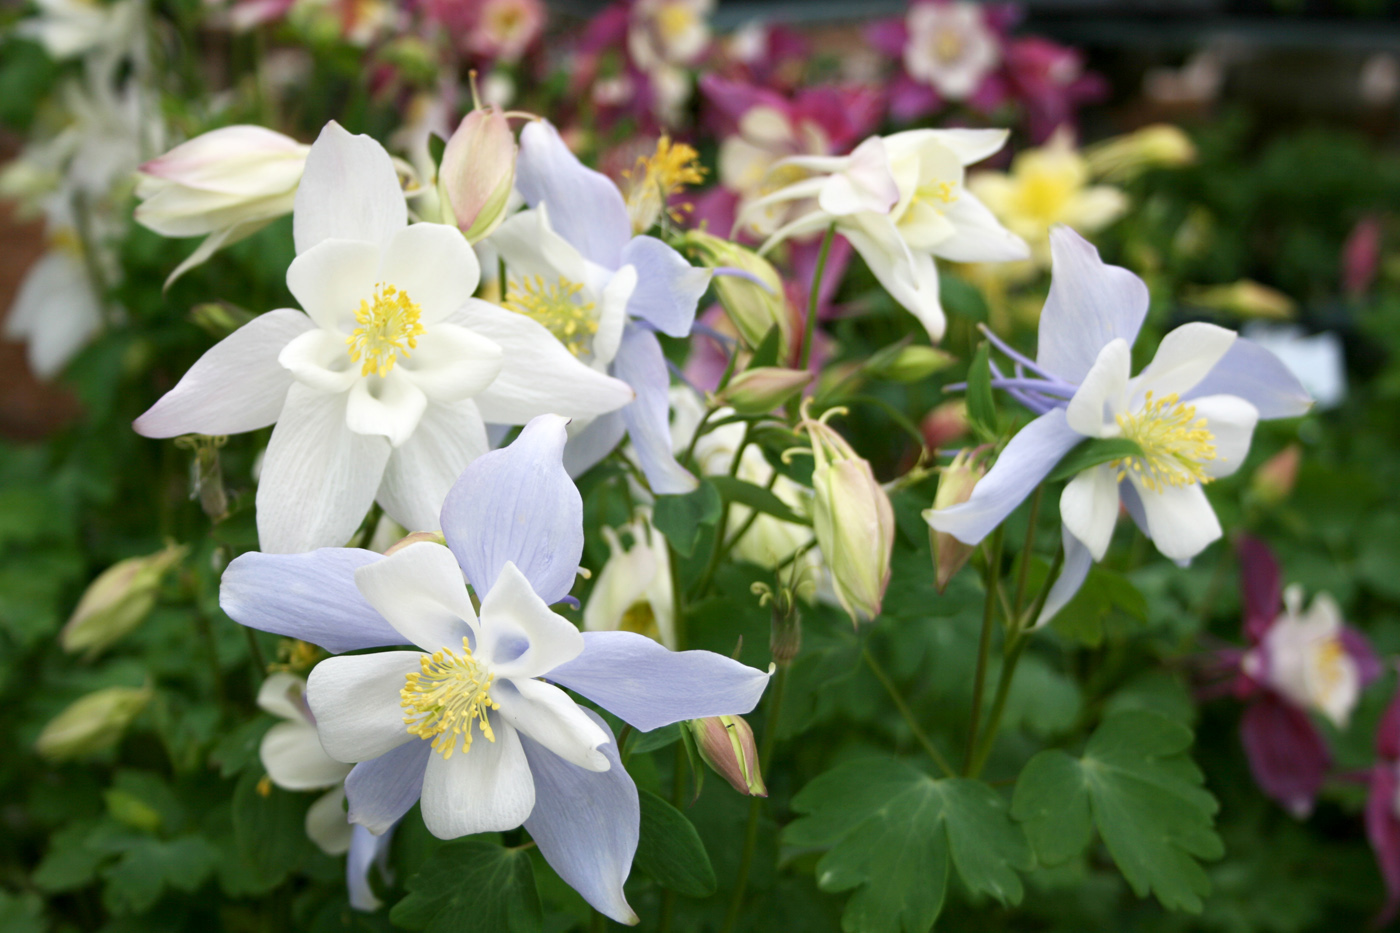 Colorful columbine adds garden beauty mississippi state university the blooms of columbine add mixes of bright pastels to any landscape the all izmirmasajfo